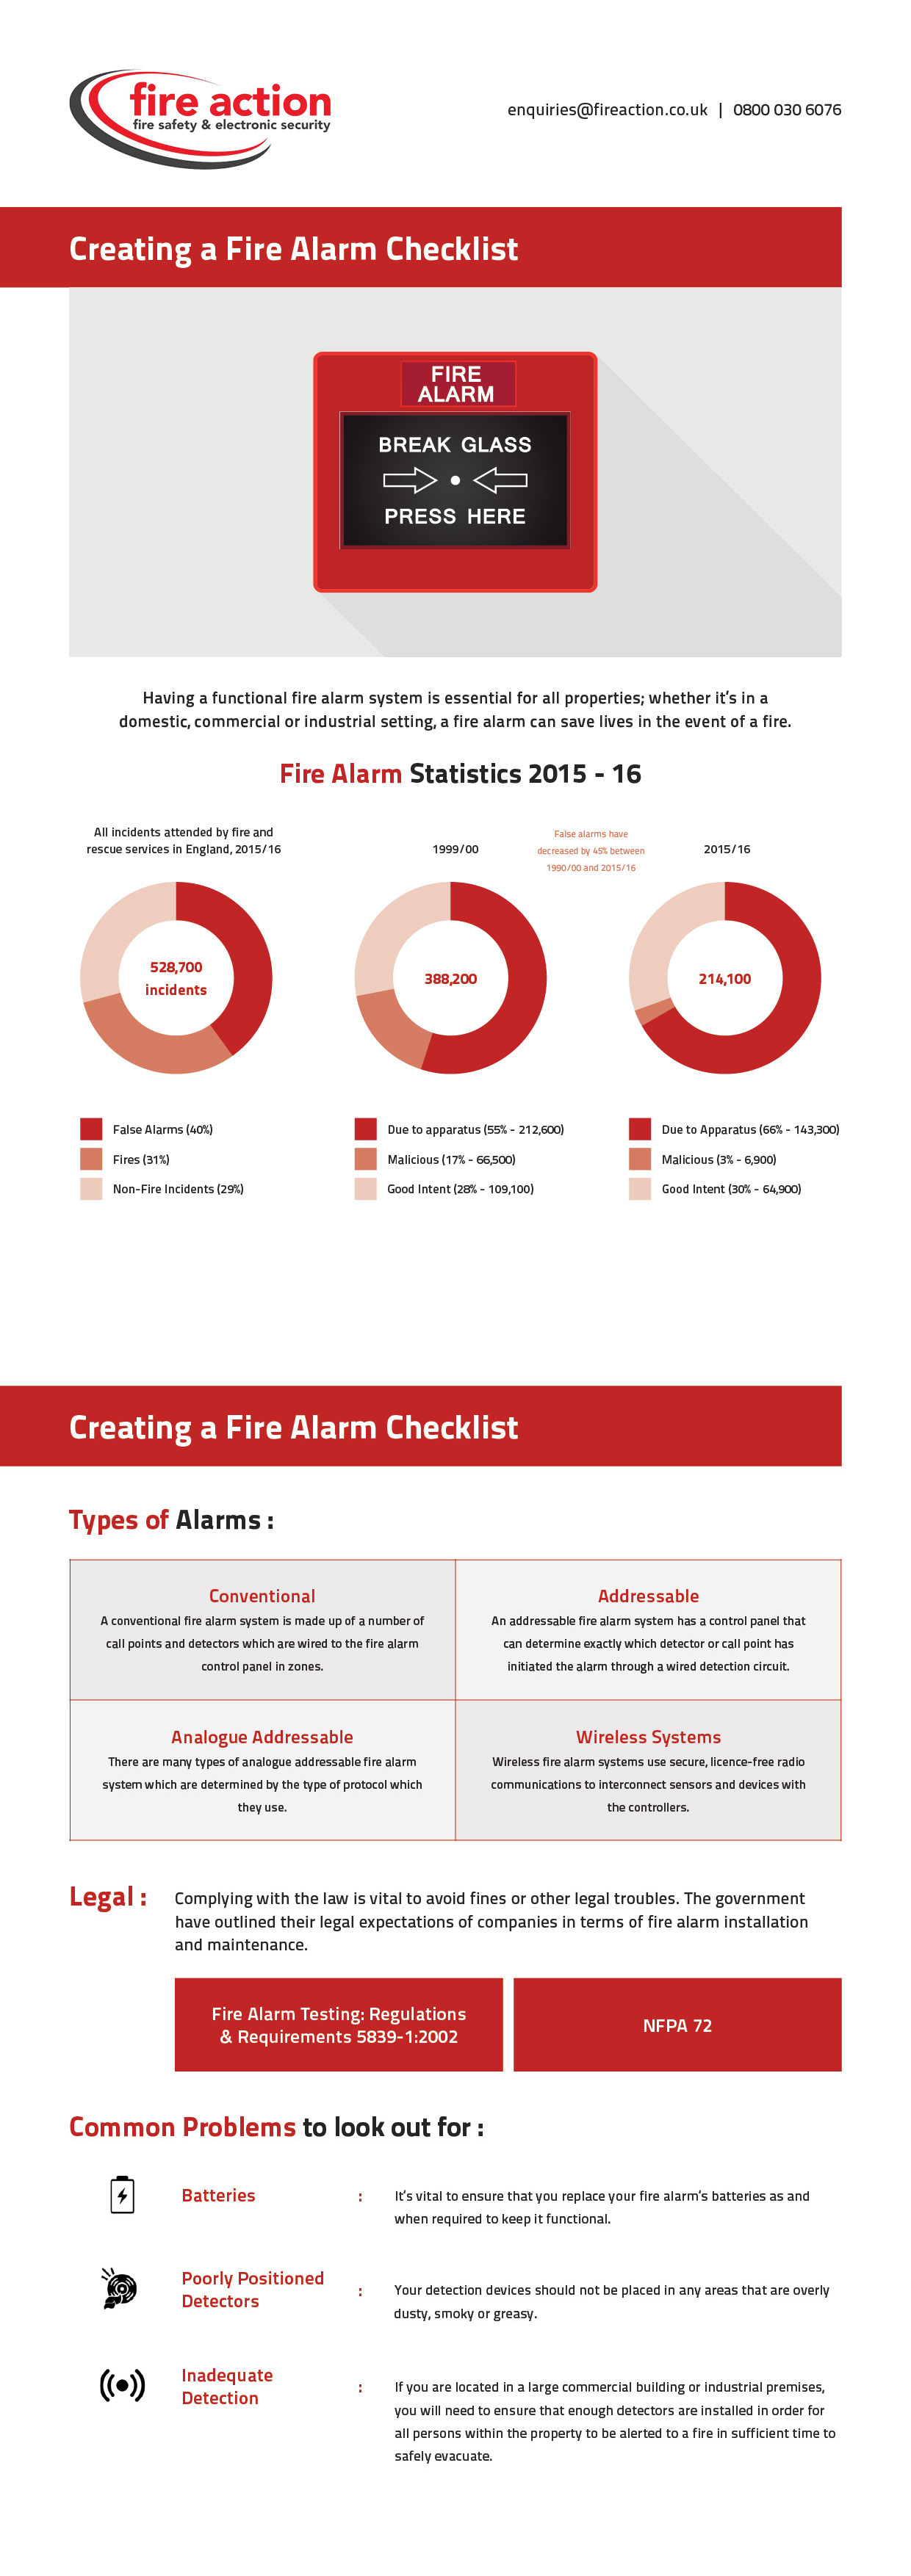 Creating your Fire Alarm Maintenance Checklist - Fire Action Ltd